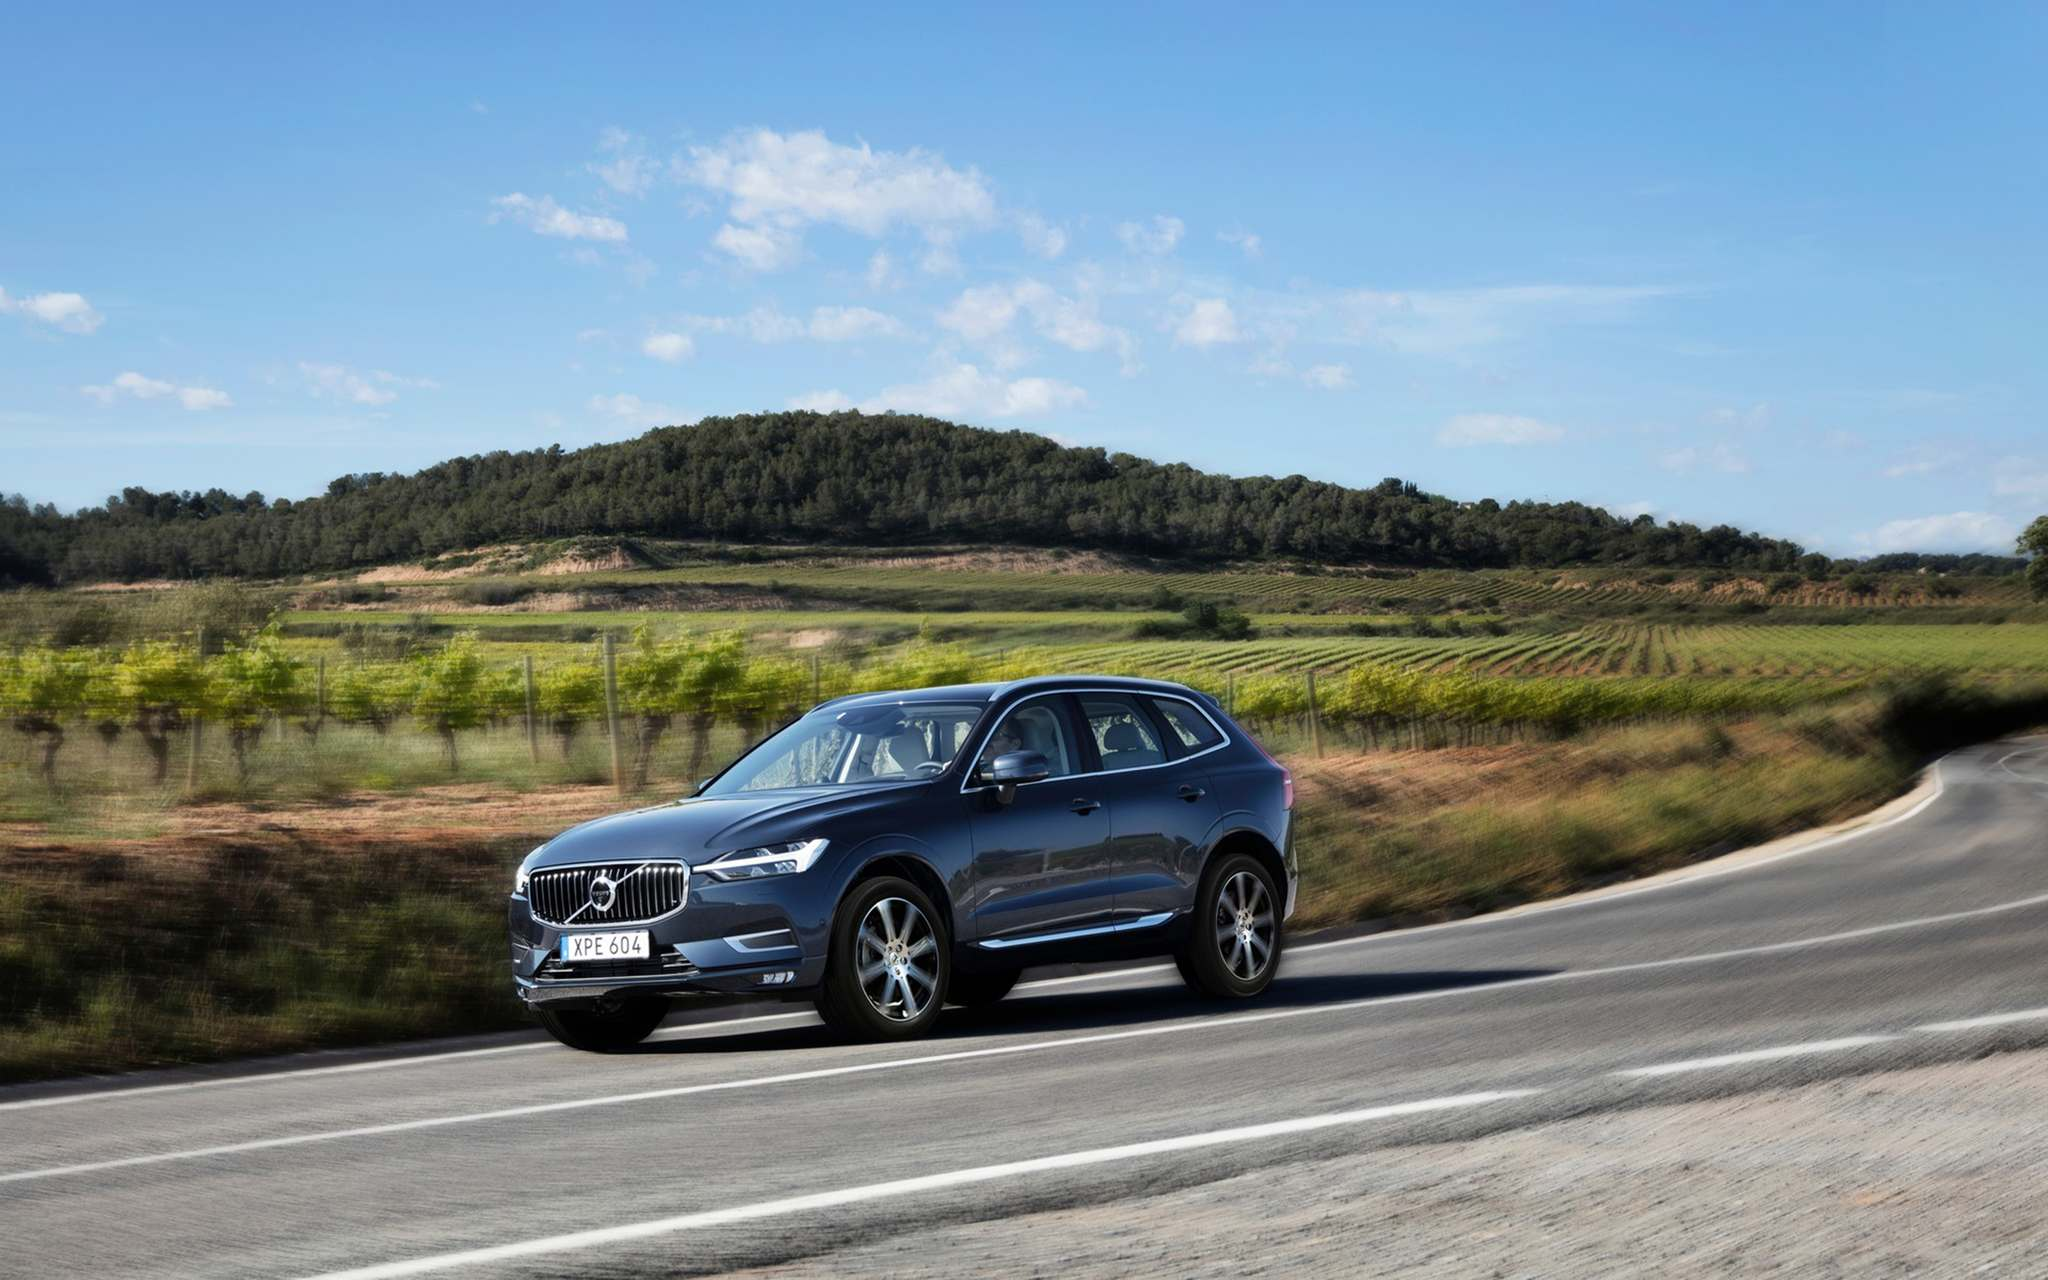 VOLVOThe new XC60 is 44 milimetres long, 11 mm wider and 55 mm lower than the previous version. It borrows heavily off the design and look of the XC90.